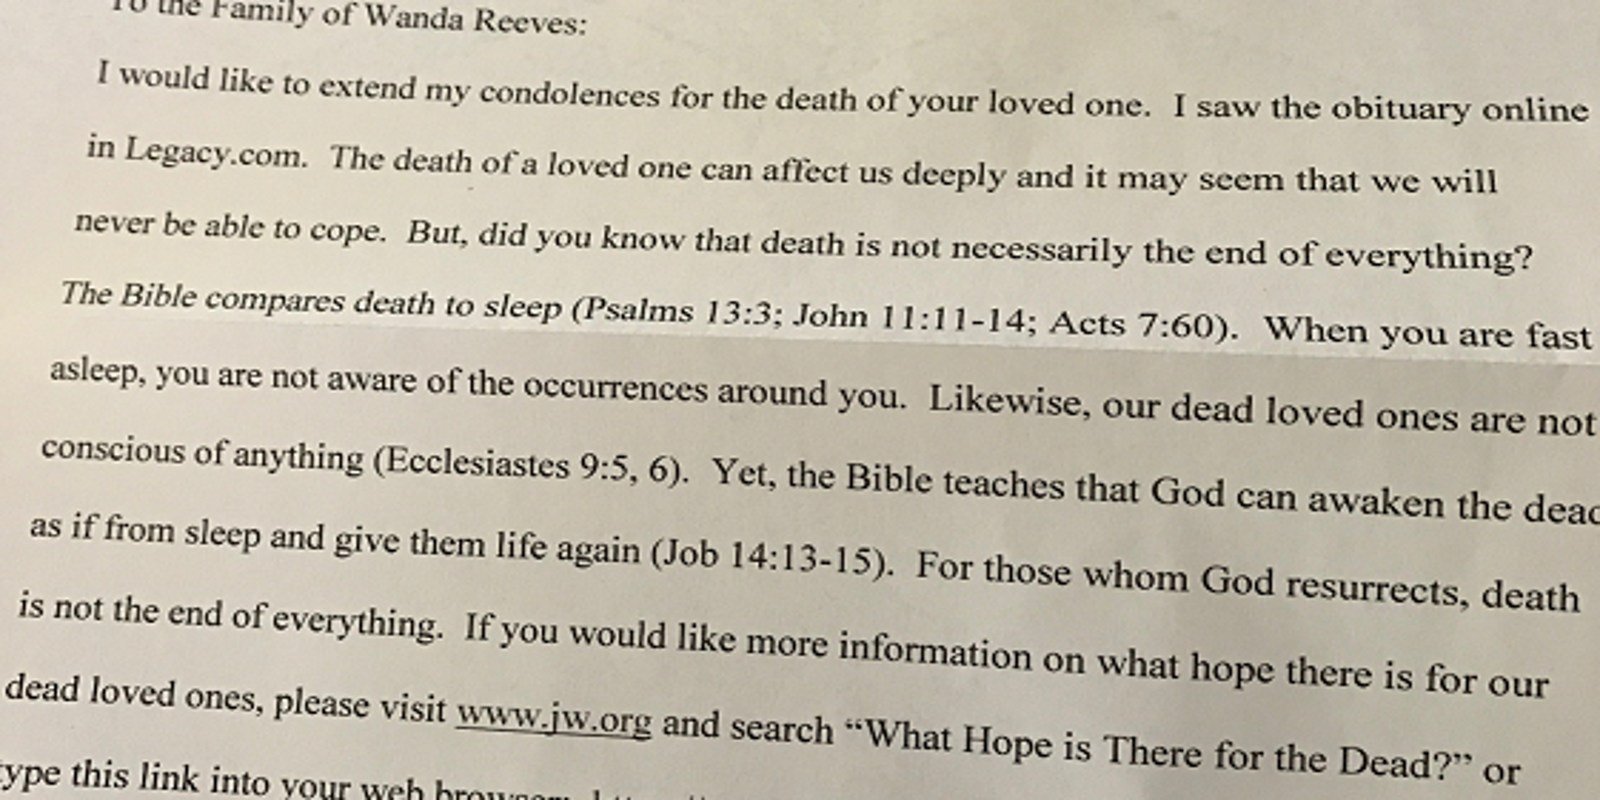 Trolling the obits in the name of God